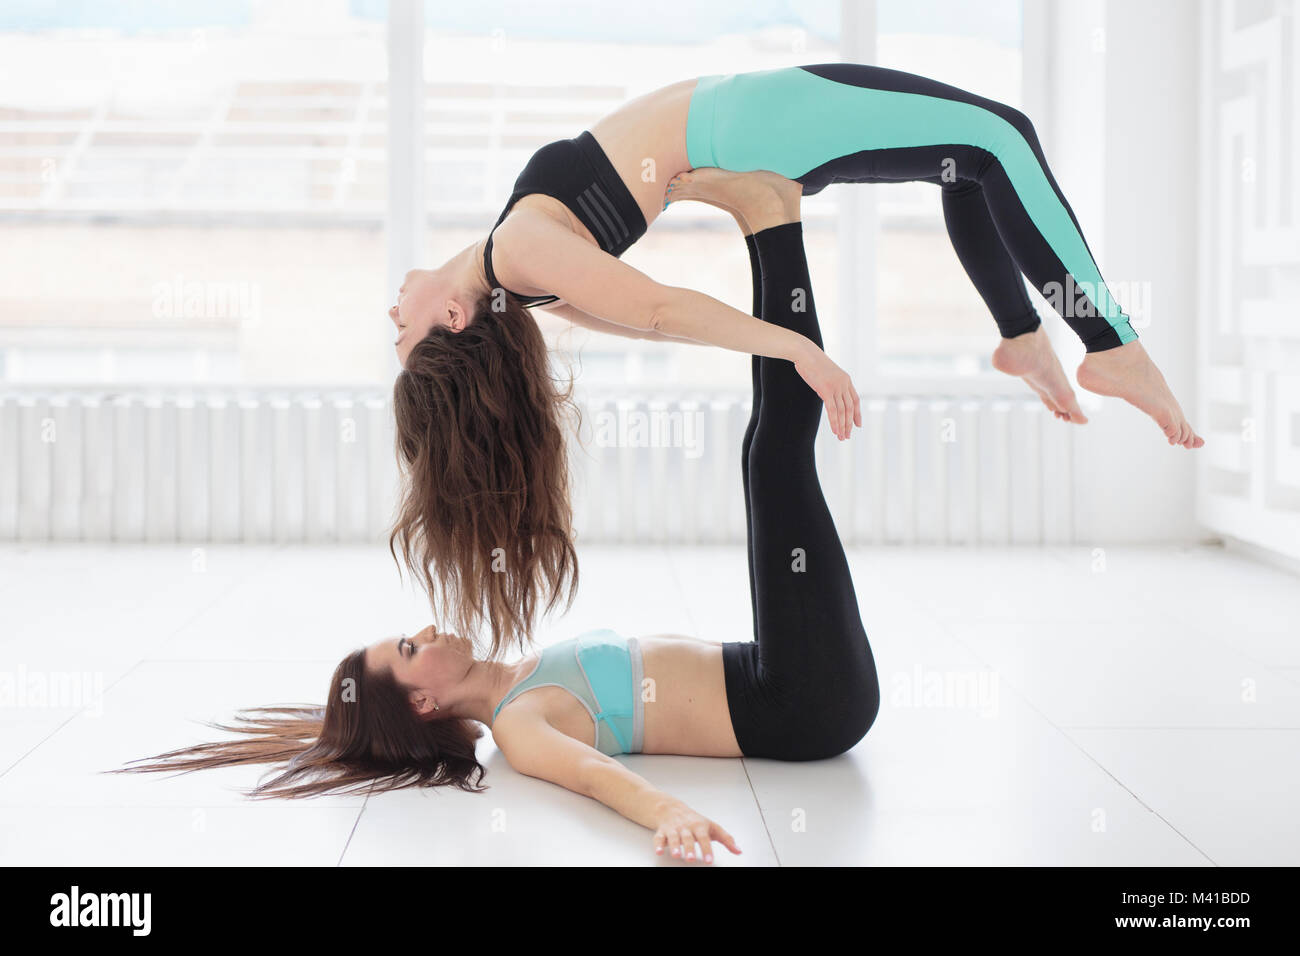 Group Of Two Fit Women Practicing Balance Yoga Pose Stock Photo Alamy